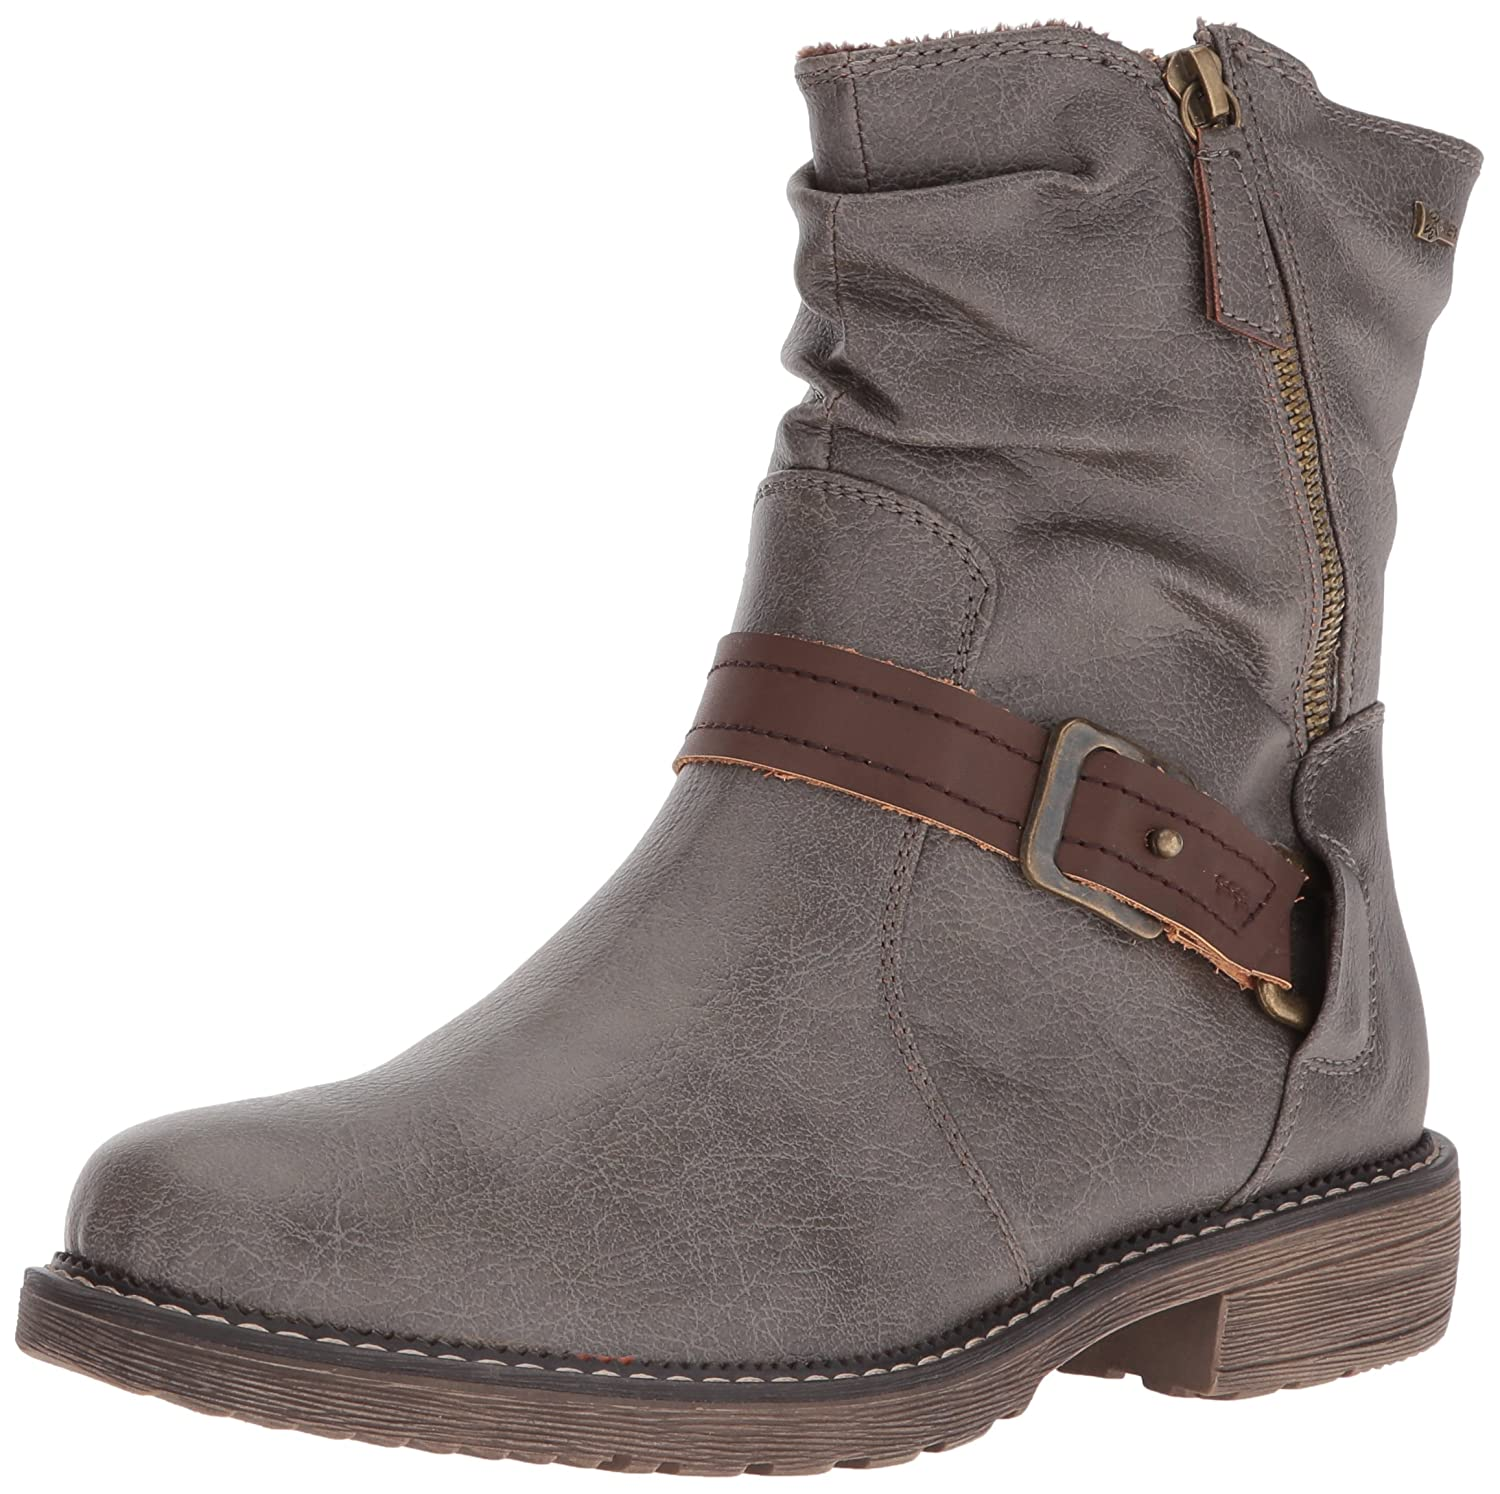 Spring Step Women's Feijo Boot B01EIS6C9W 39 M EU / 8.5 B(M) US|Gray